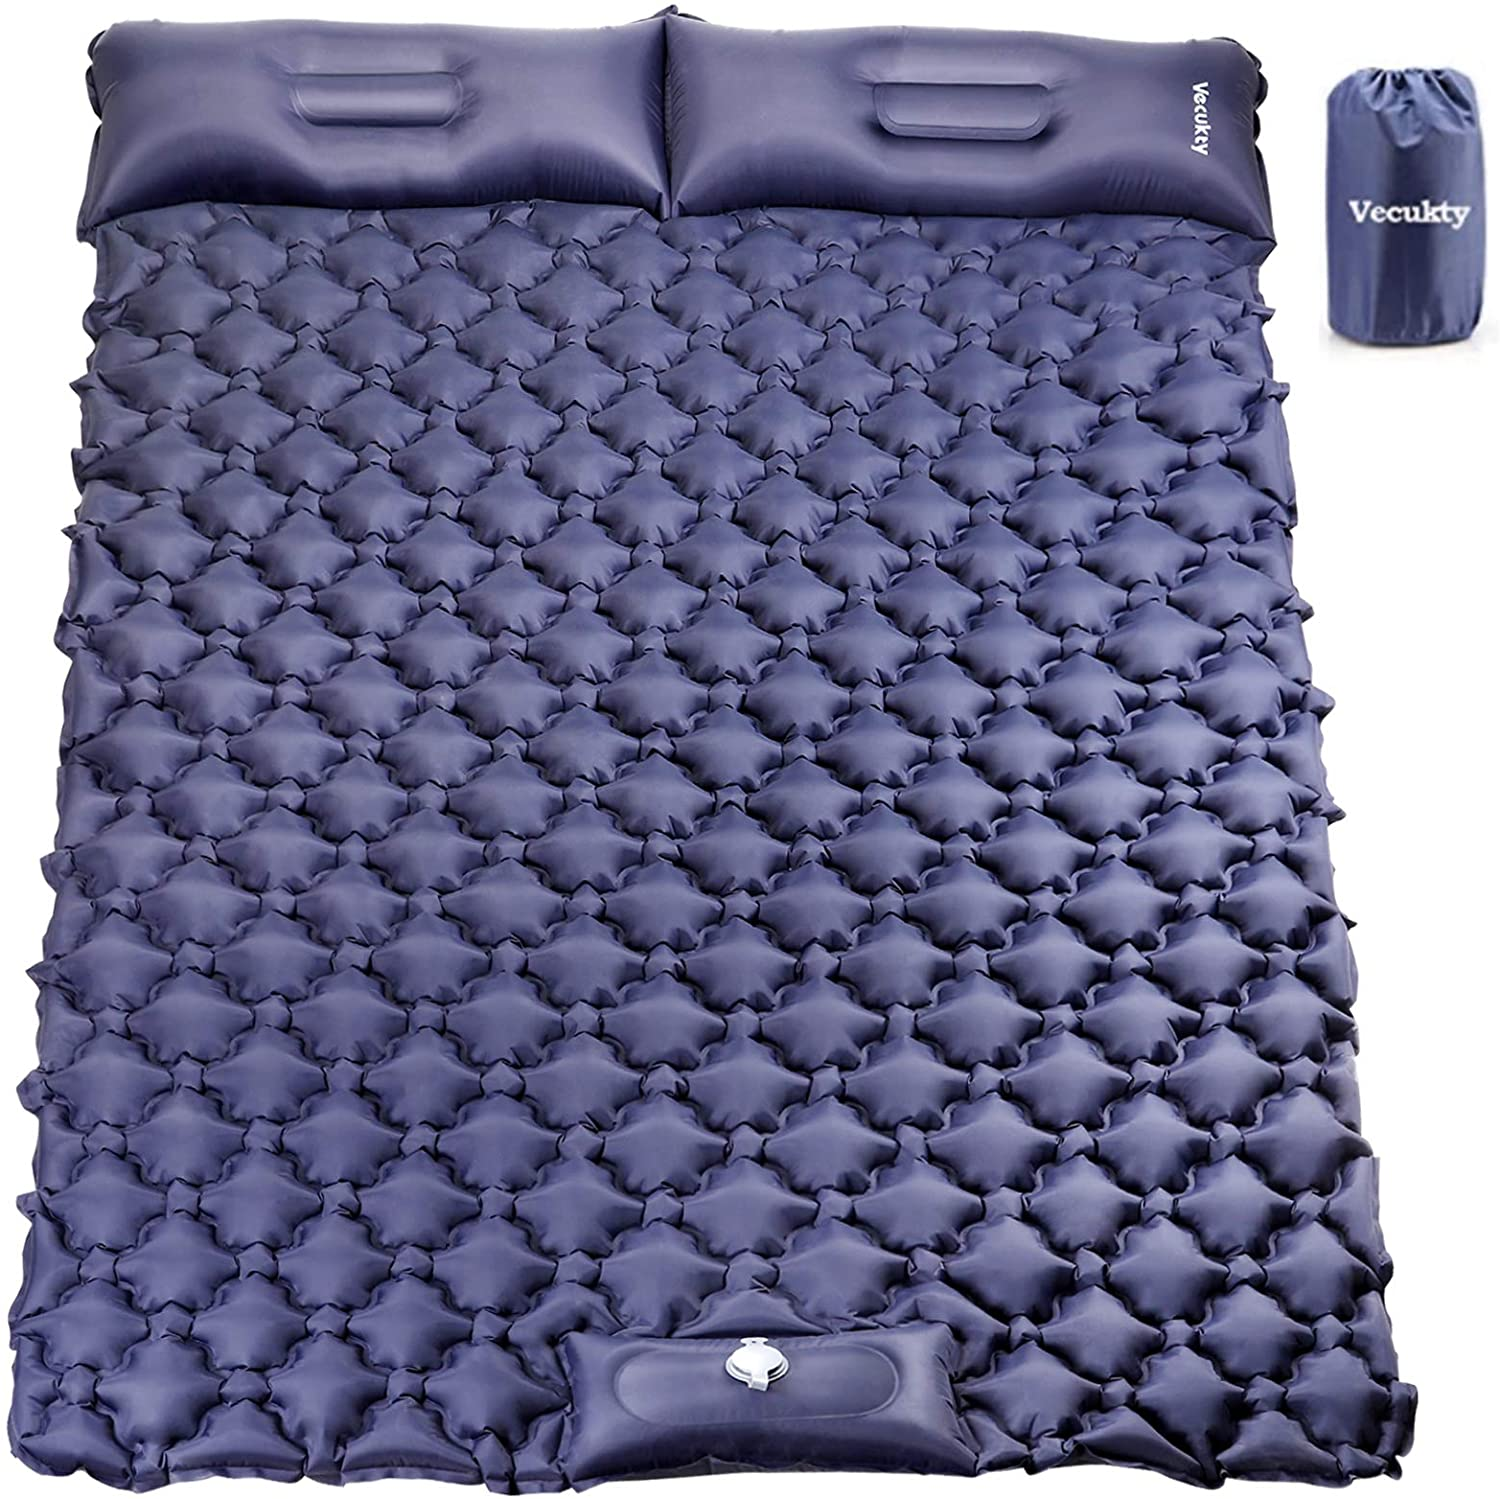 VECUKTY Double Luxury Camping Sleeping Max 49% OFF Pad Foot Press Inflata Upgraded